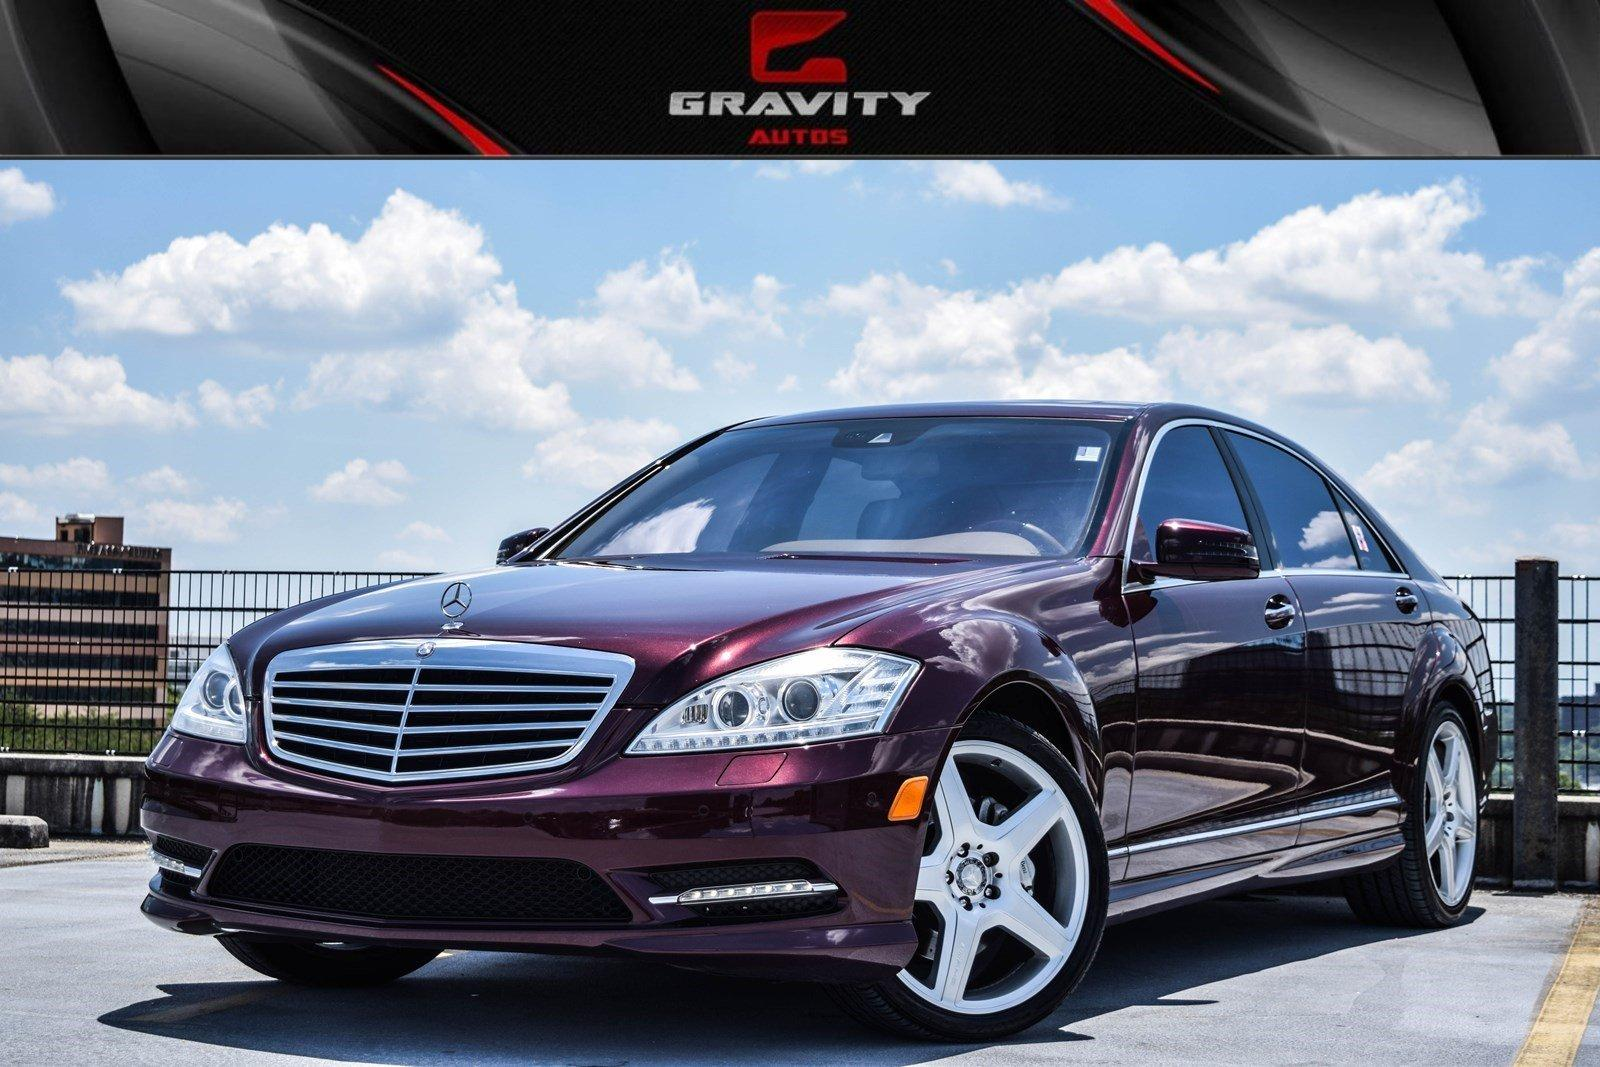 2013 mercedes benz s class s 550 stock 497886 for sale near sandy springs ga ga mercedes. Black Bedroom Furniture Sets. Home Design Ideas